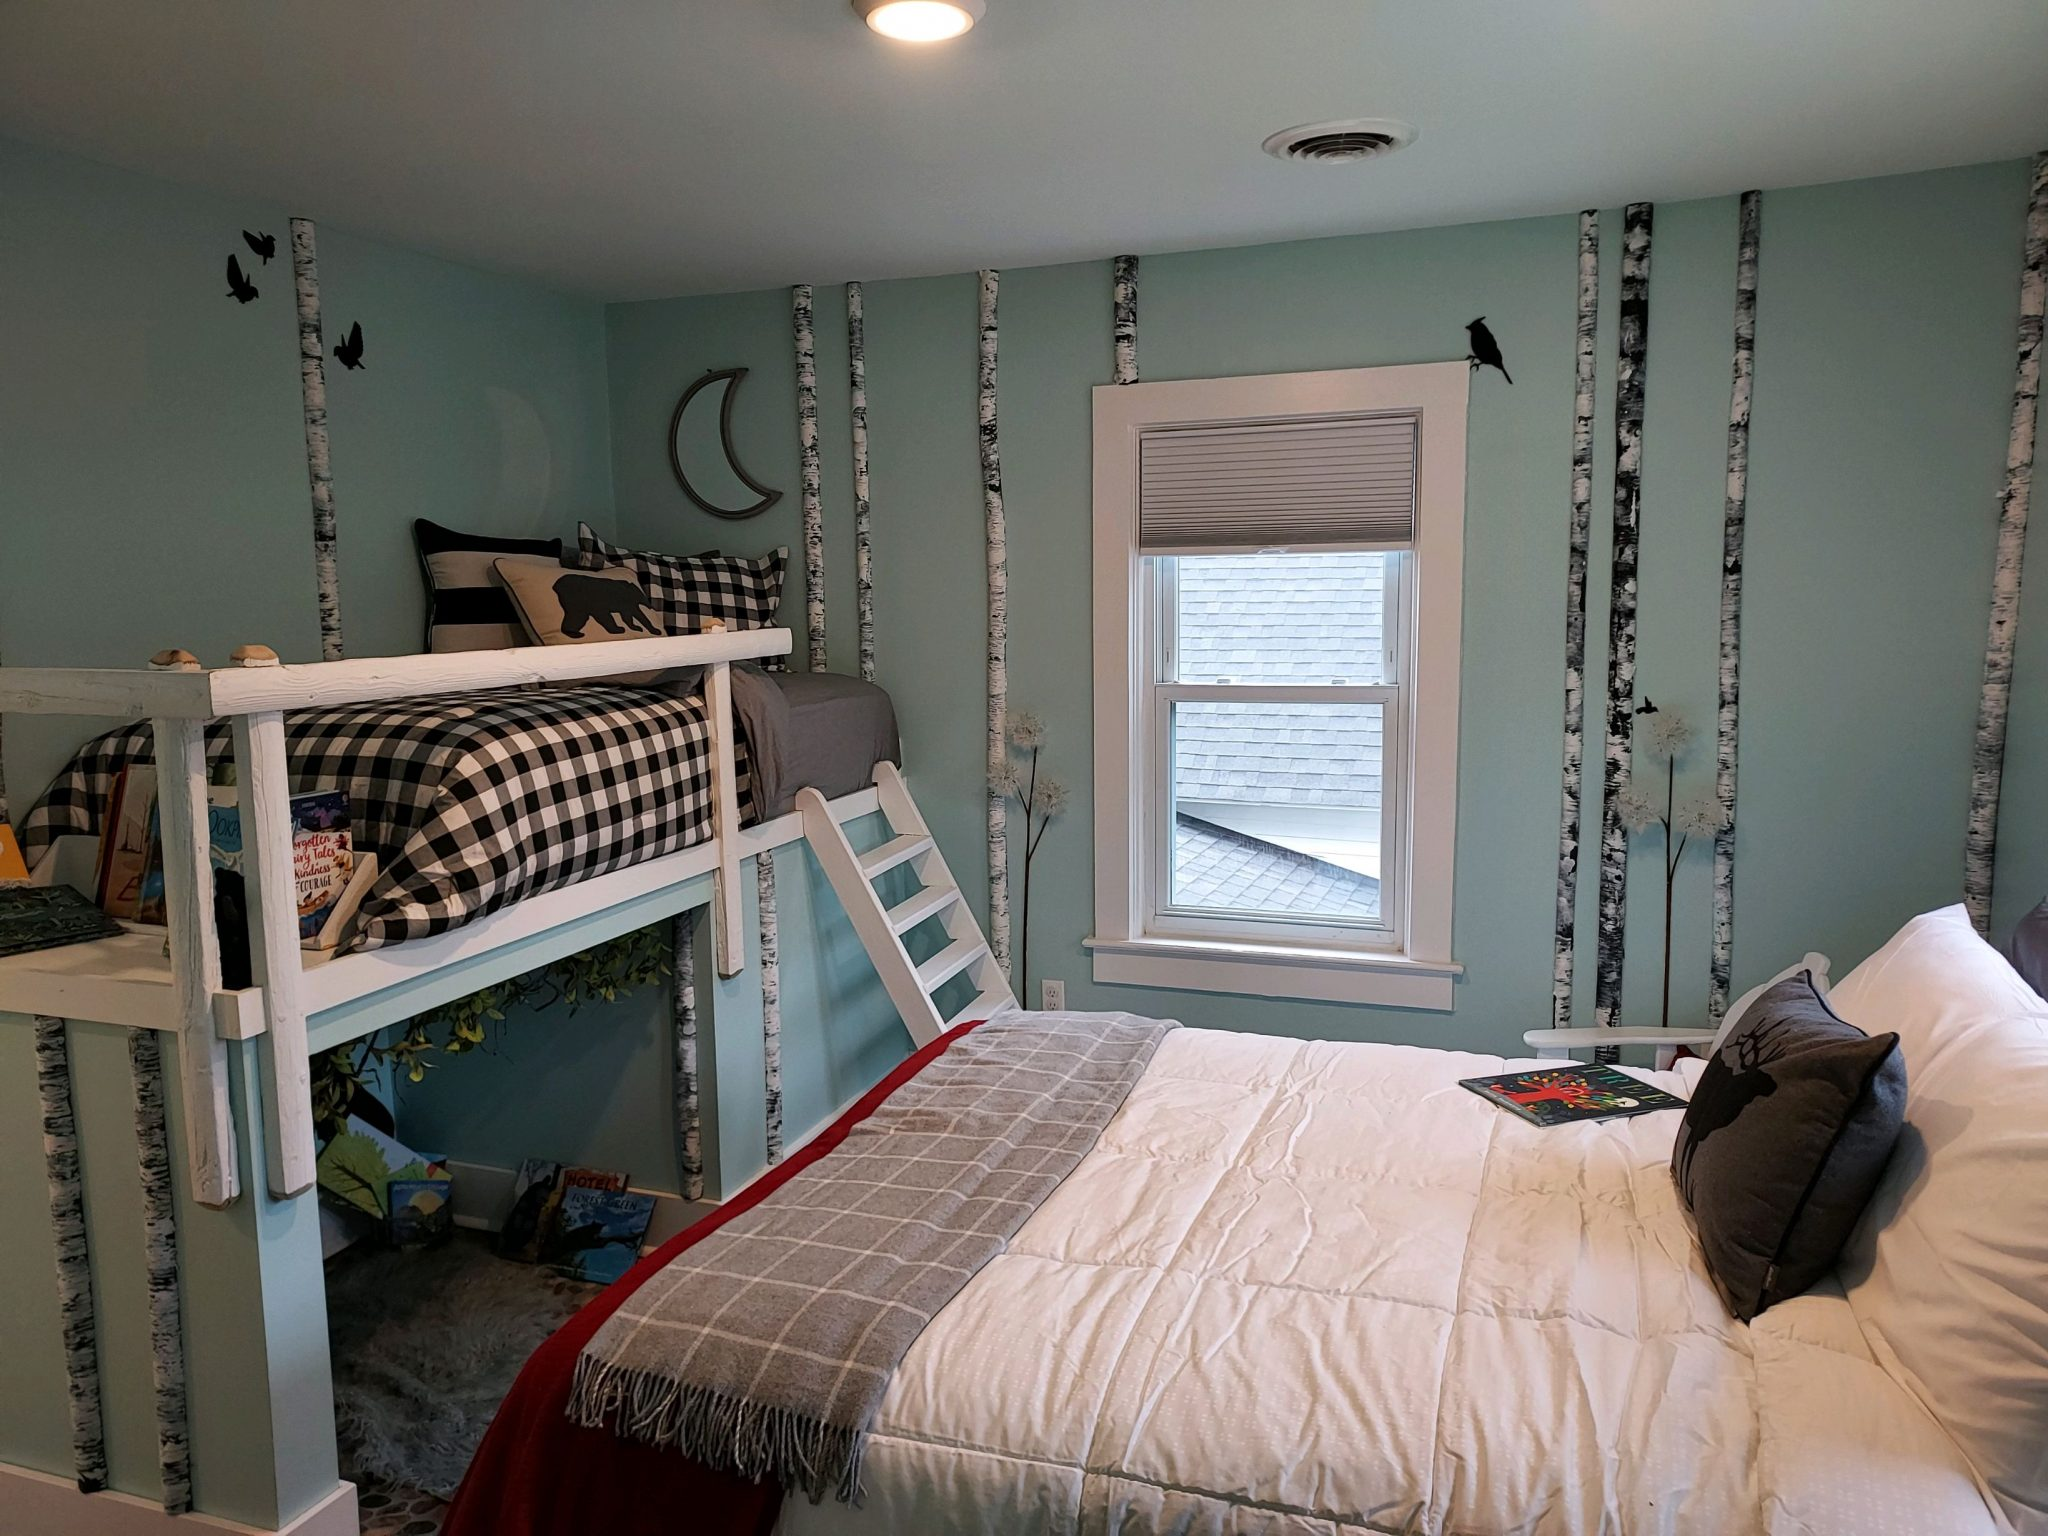 A bedroom at the Ronald McDonald Family Retreat at Krantz Cottage, featuring faux birch branches and other Adirondack decor.